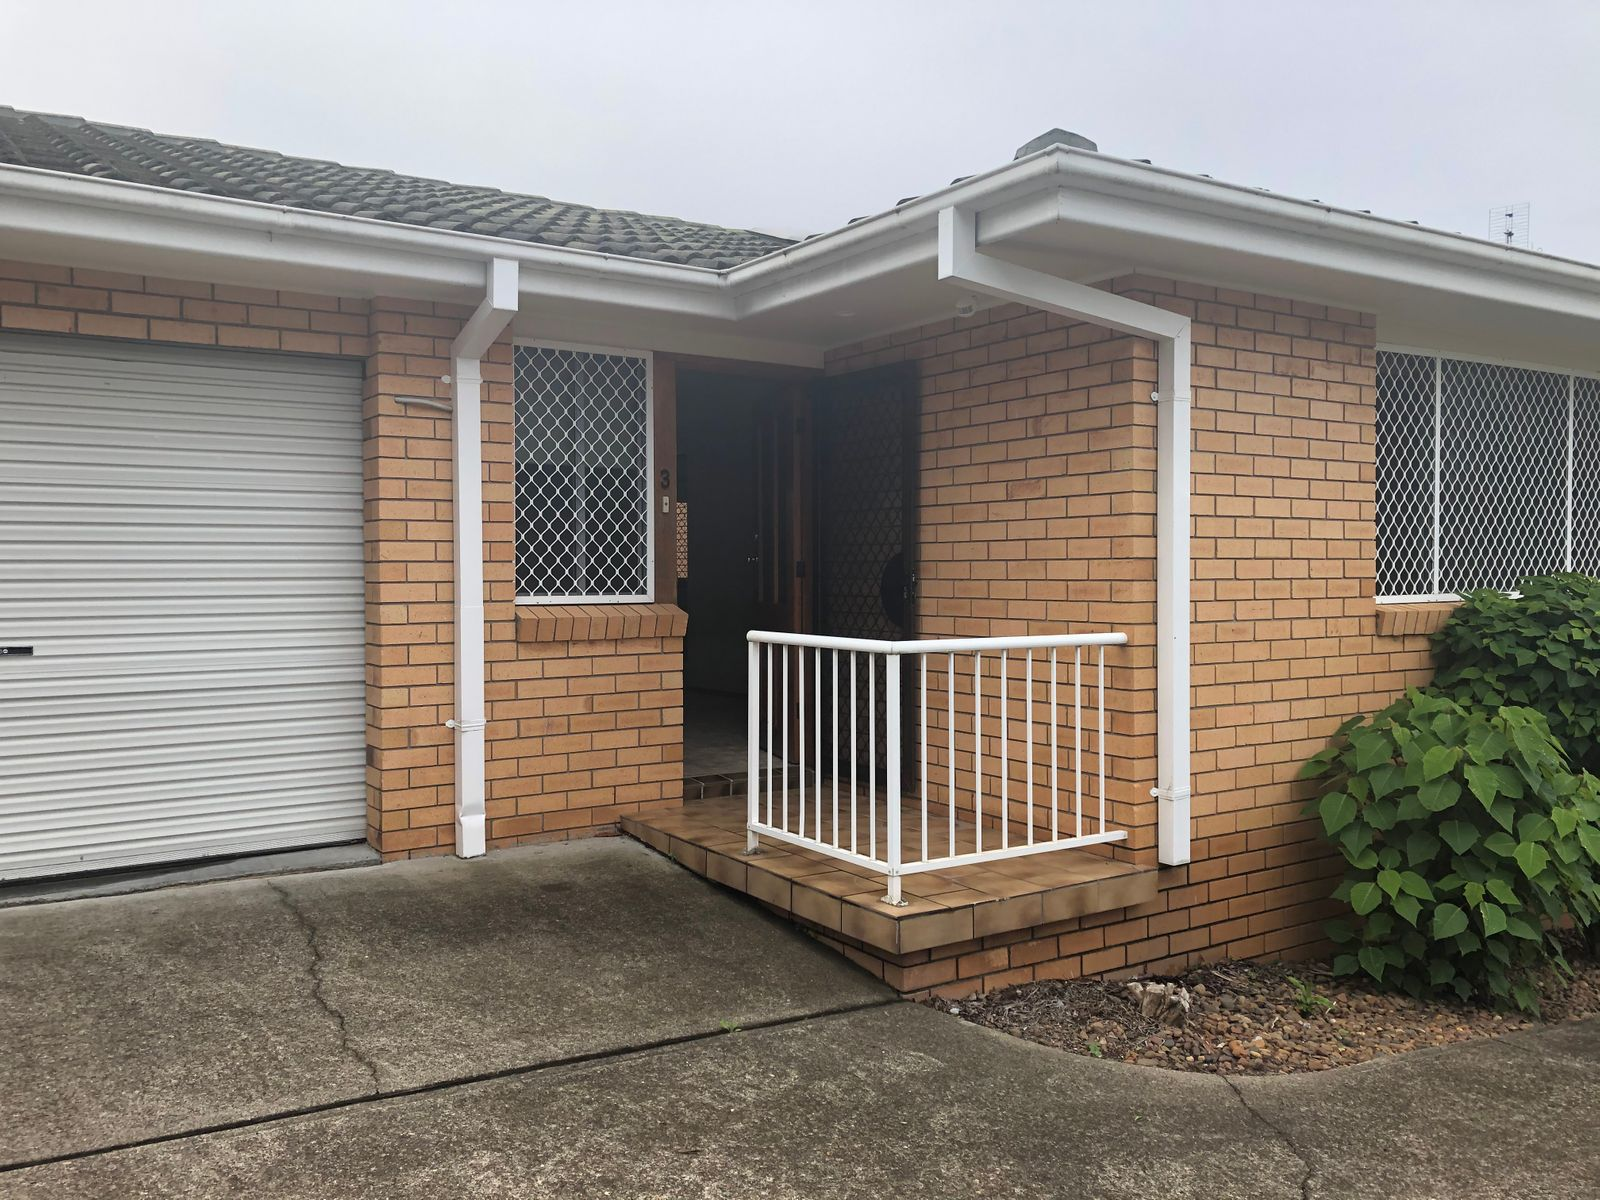 3/20 Flett Street, Taree, NSW 2430